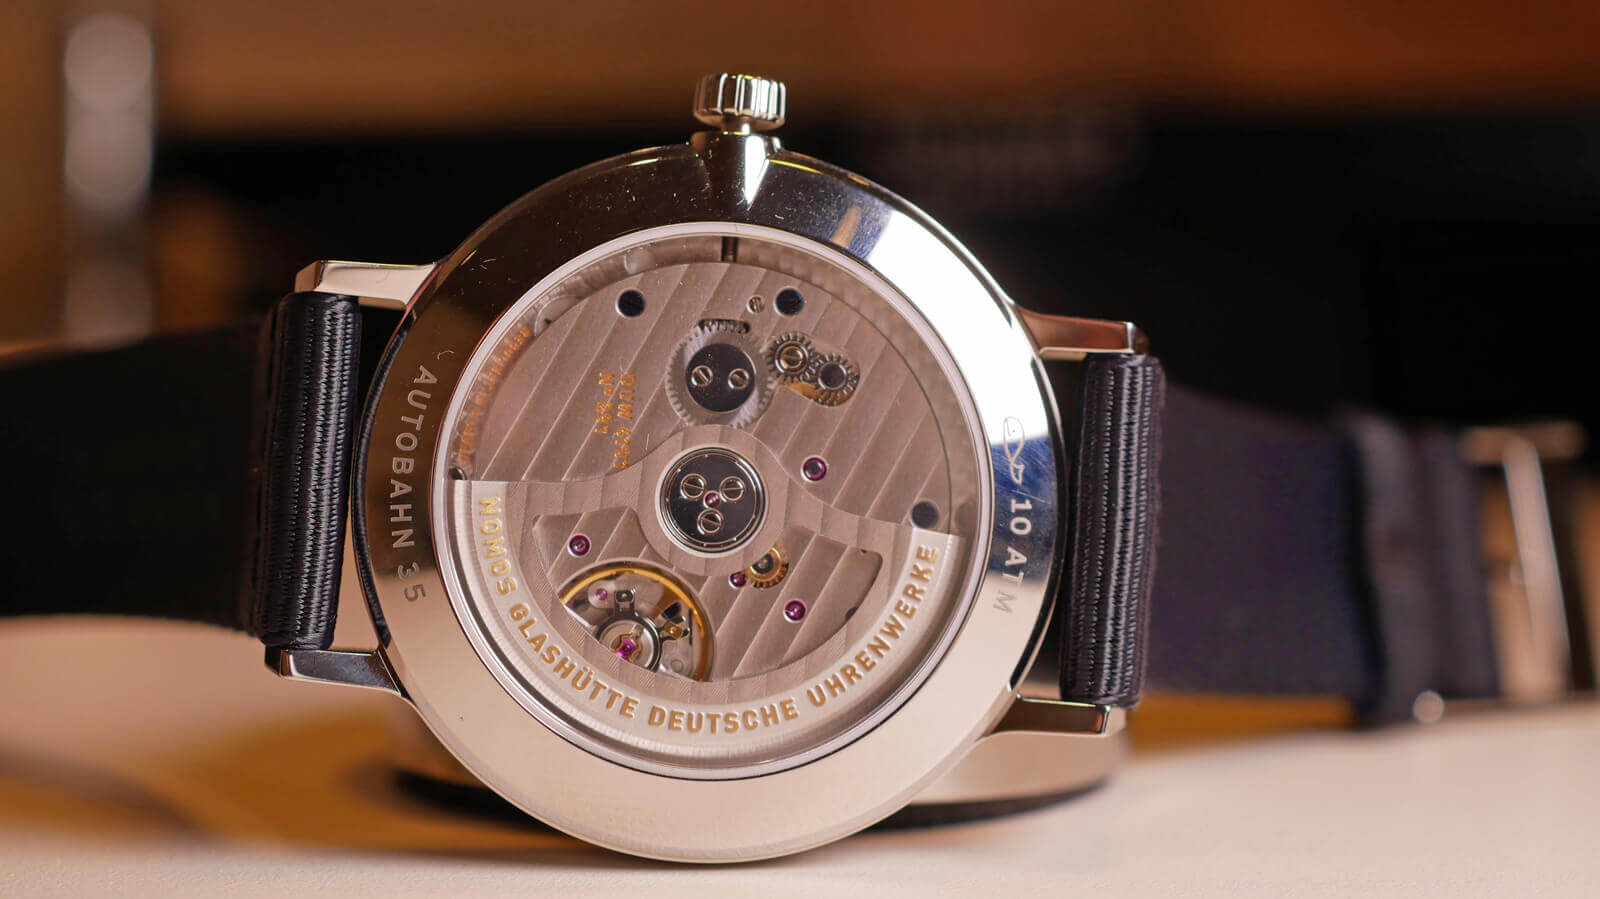 Nomos Glashuette Autobahn neomatik 41 date sports gray featuring Caliber DUW 6101 incorporating stop-seconds mechanism and in-house escapement